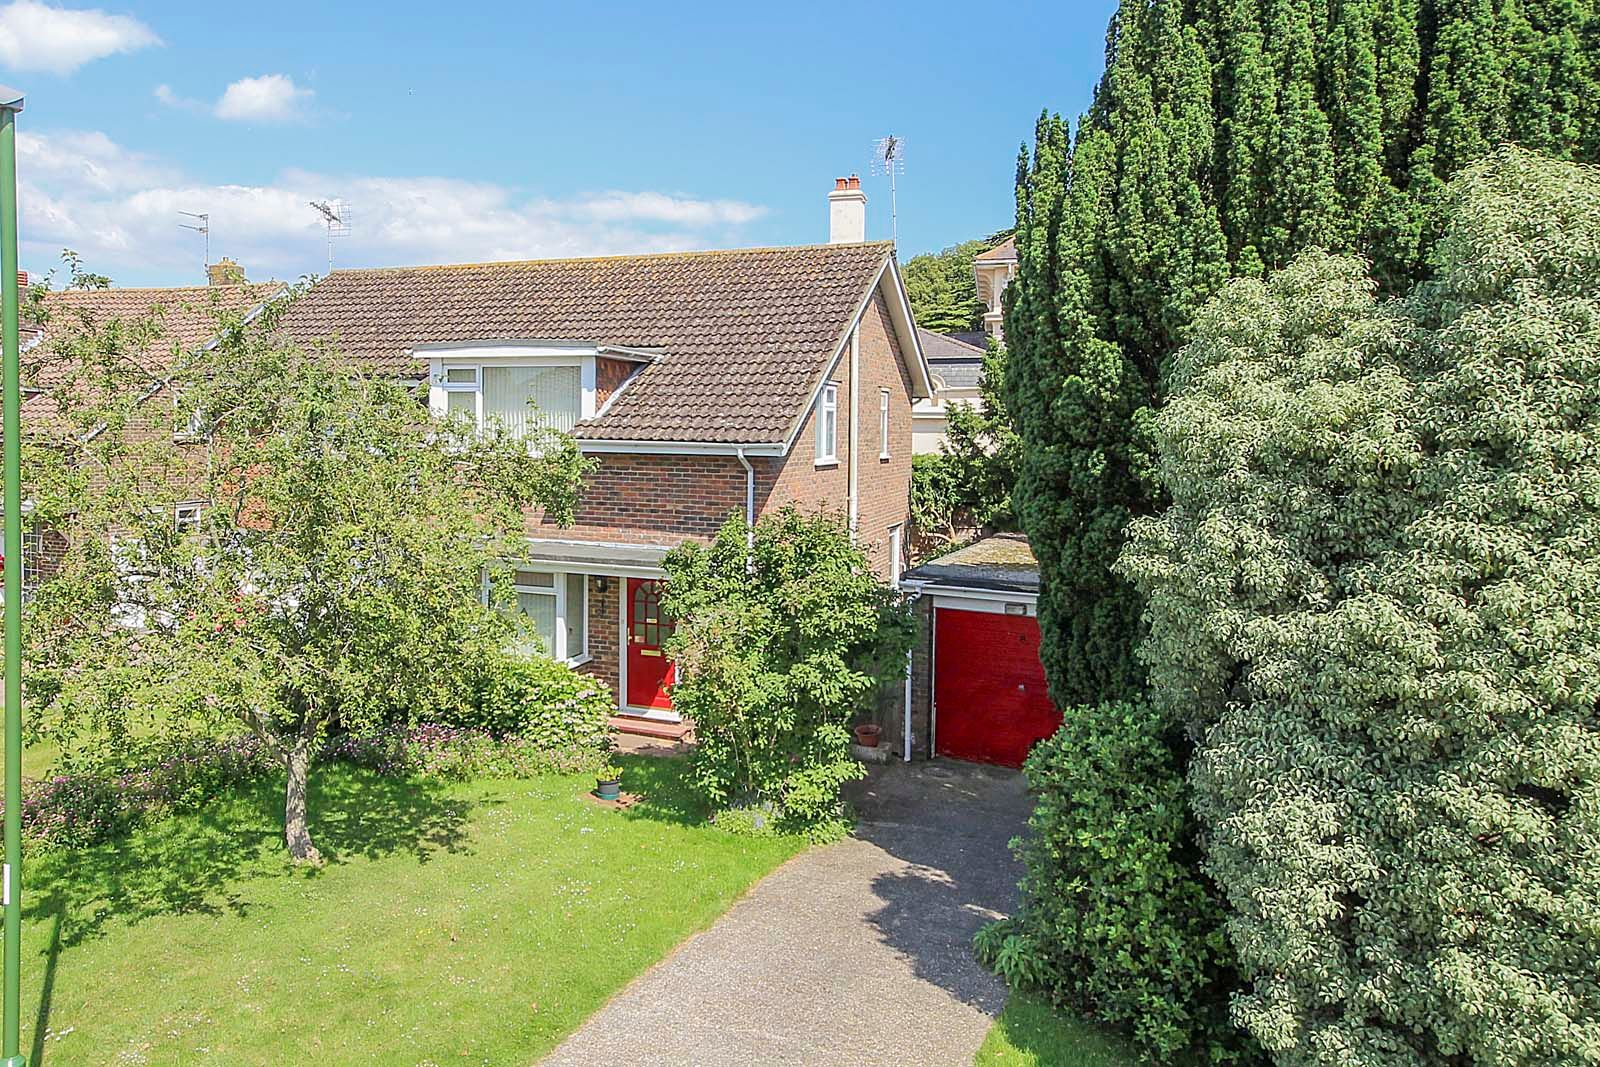 3 bed house for sale in Copse View - Property Image 1